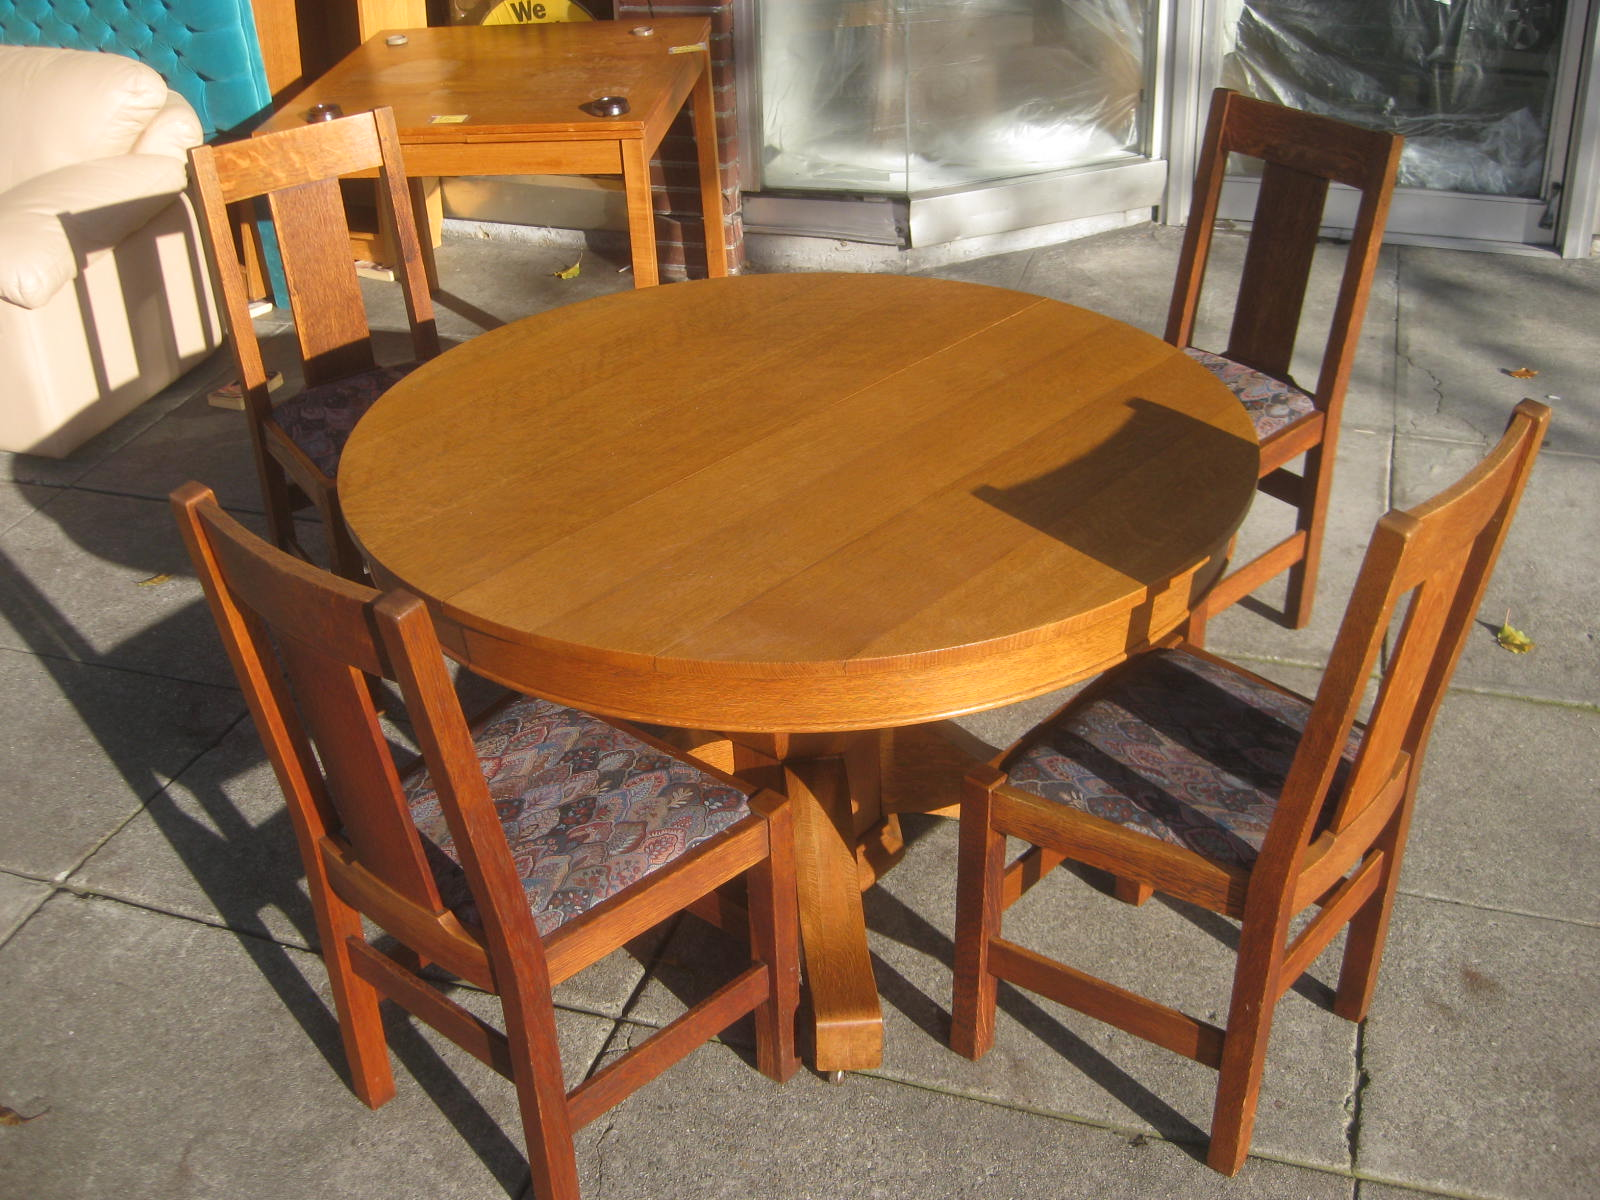 Arts And Crafts Dining Table And Chairs: Dining Table Furniture: Arts And Crafts Dining Table And